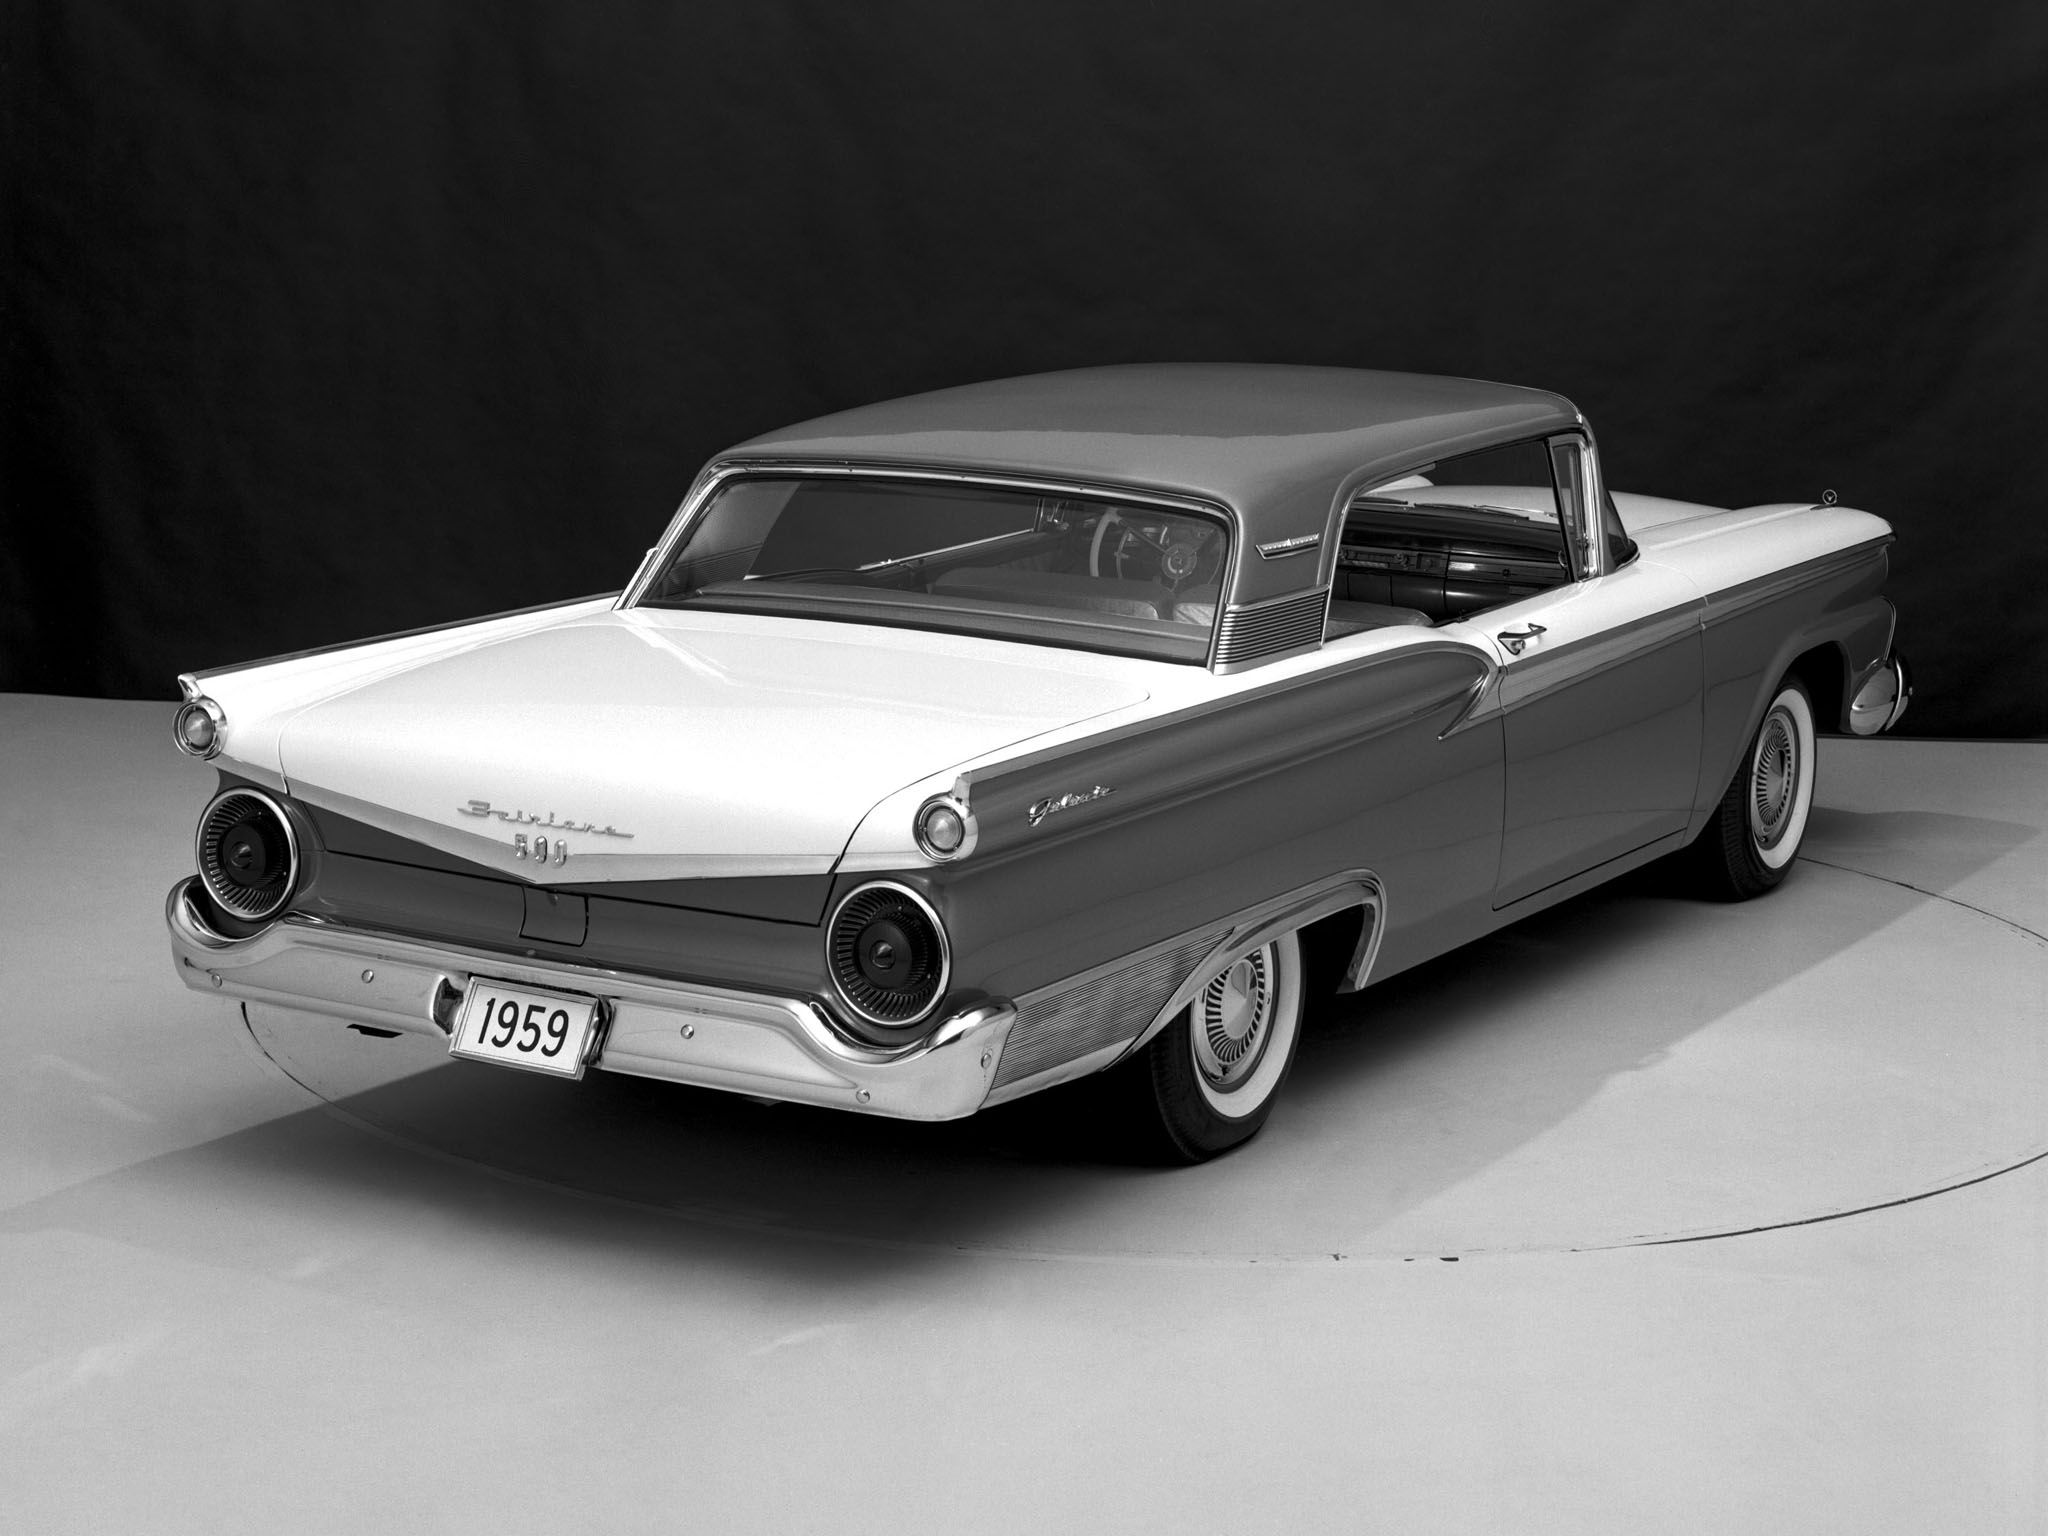 1959 Ford Fairlane 500 Galaxie Club Victoria With Images Ford